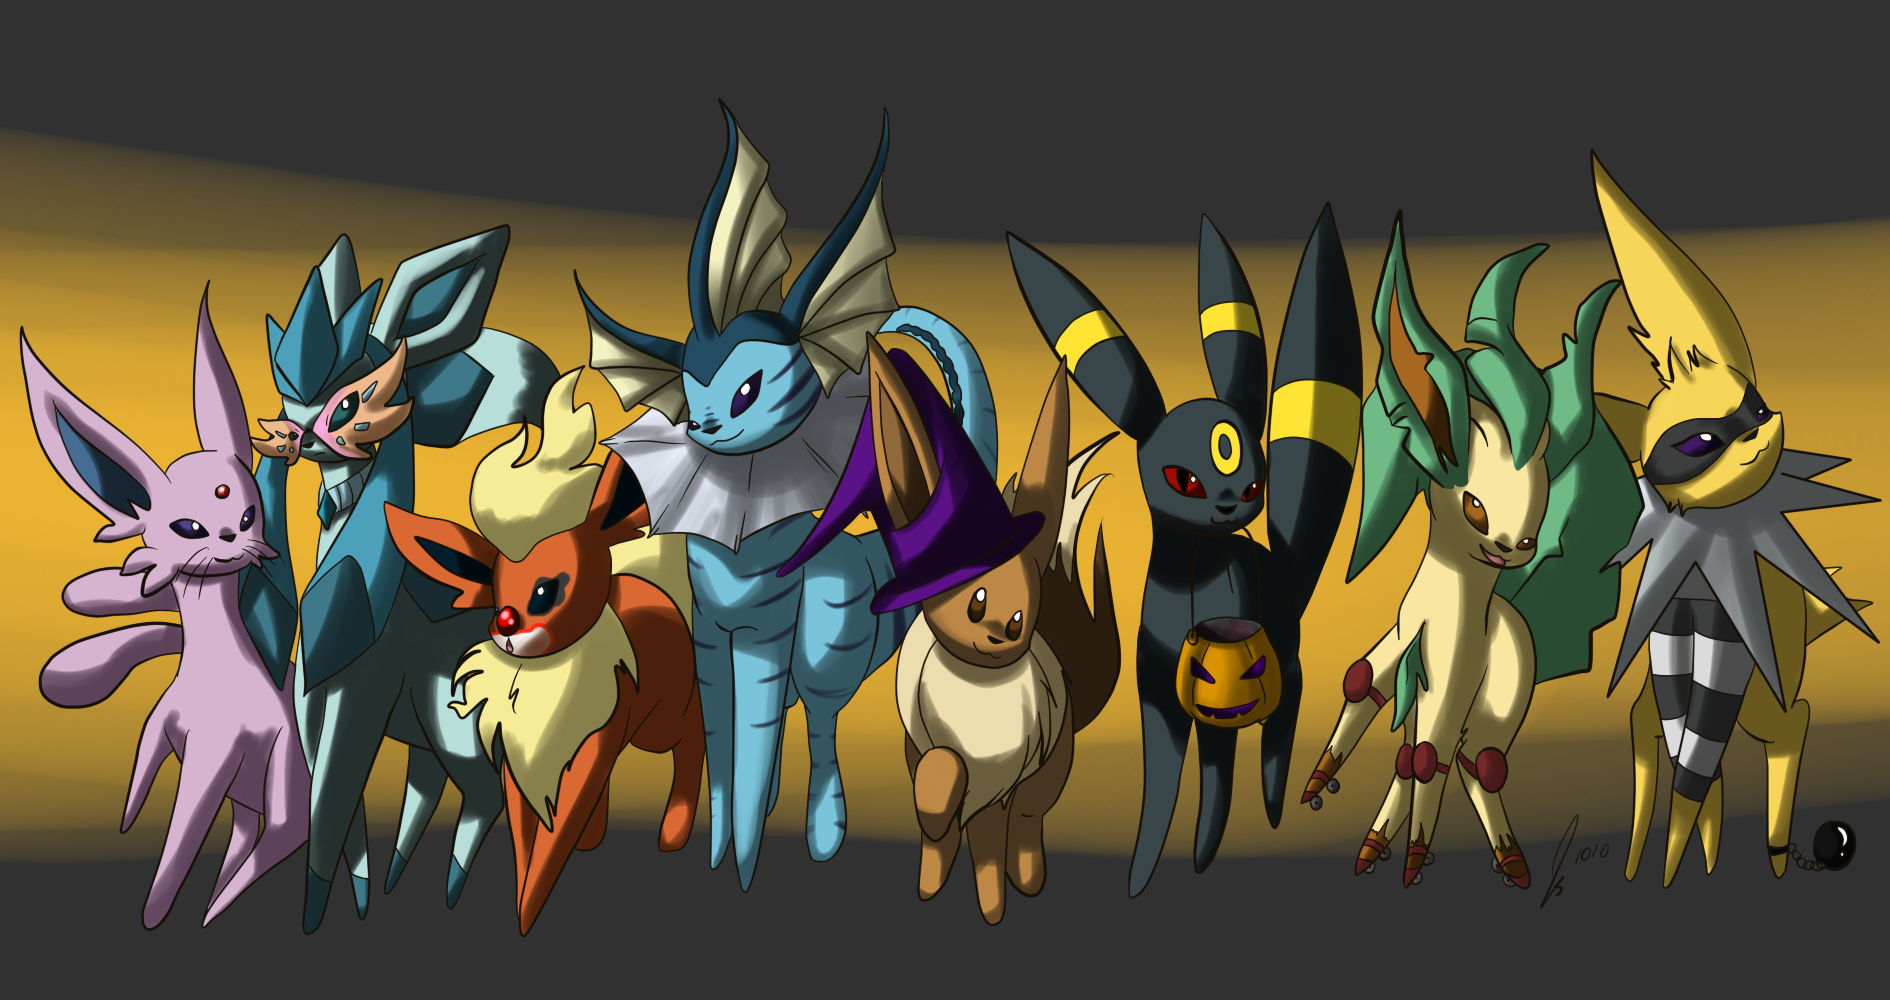 Simple Wallpaper Halloween Eevee - halloween_eeveelutions_by_jaclynonacloud-d300sp9  Graphic_299981.png